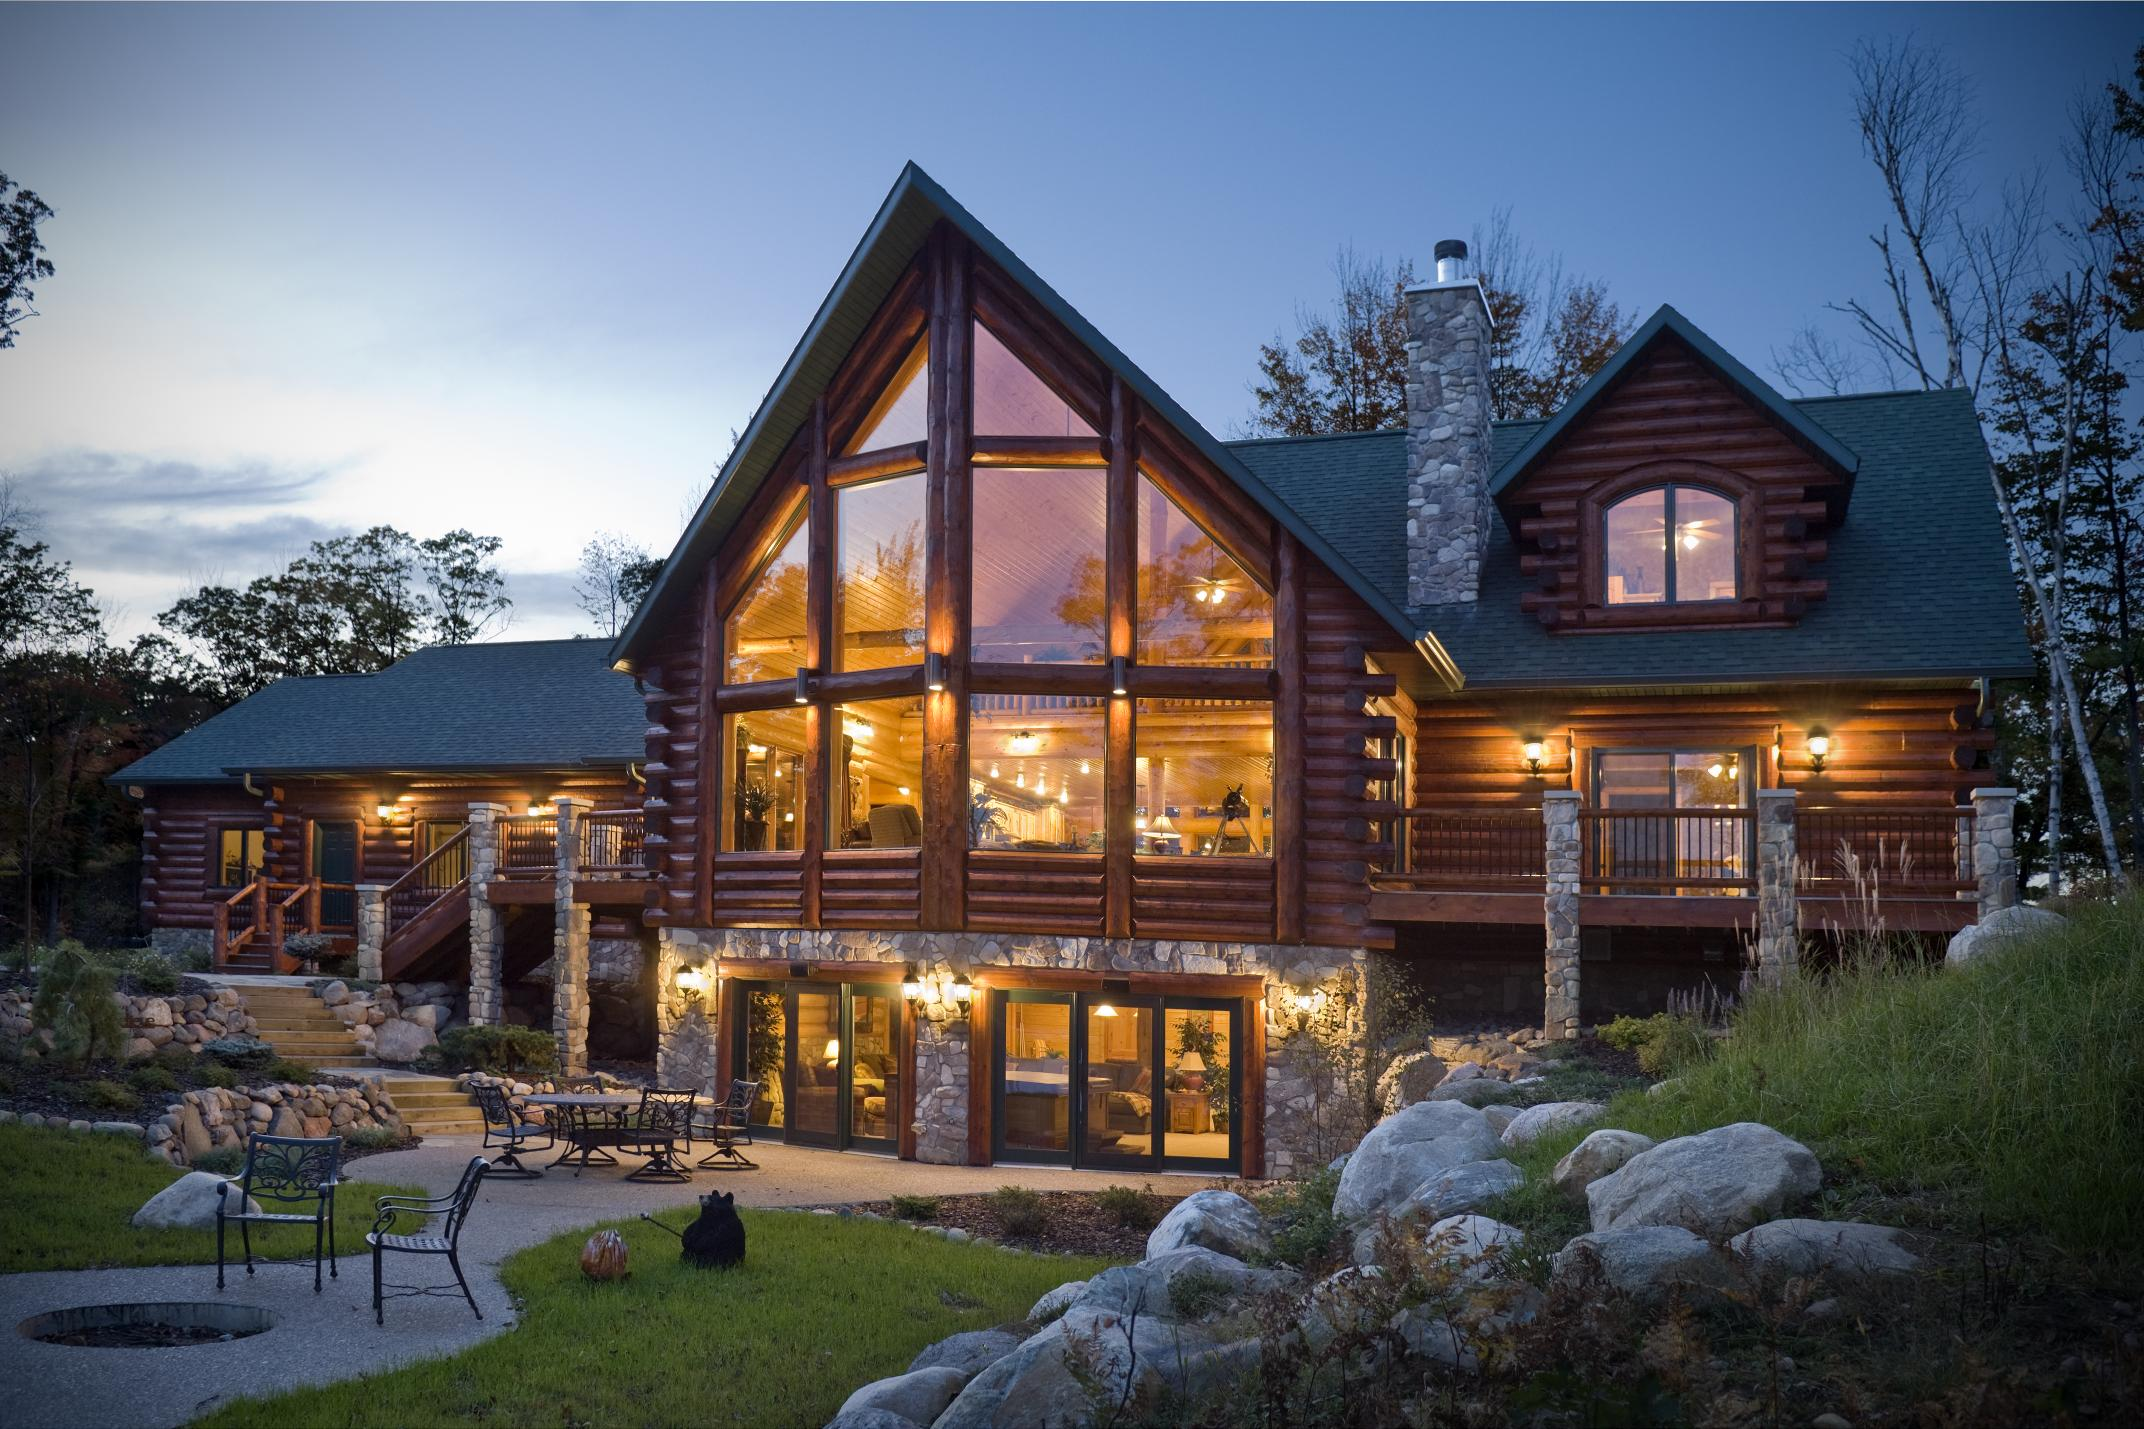 Sashco Log Home Products And Golden Eagle Homes Expand